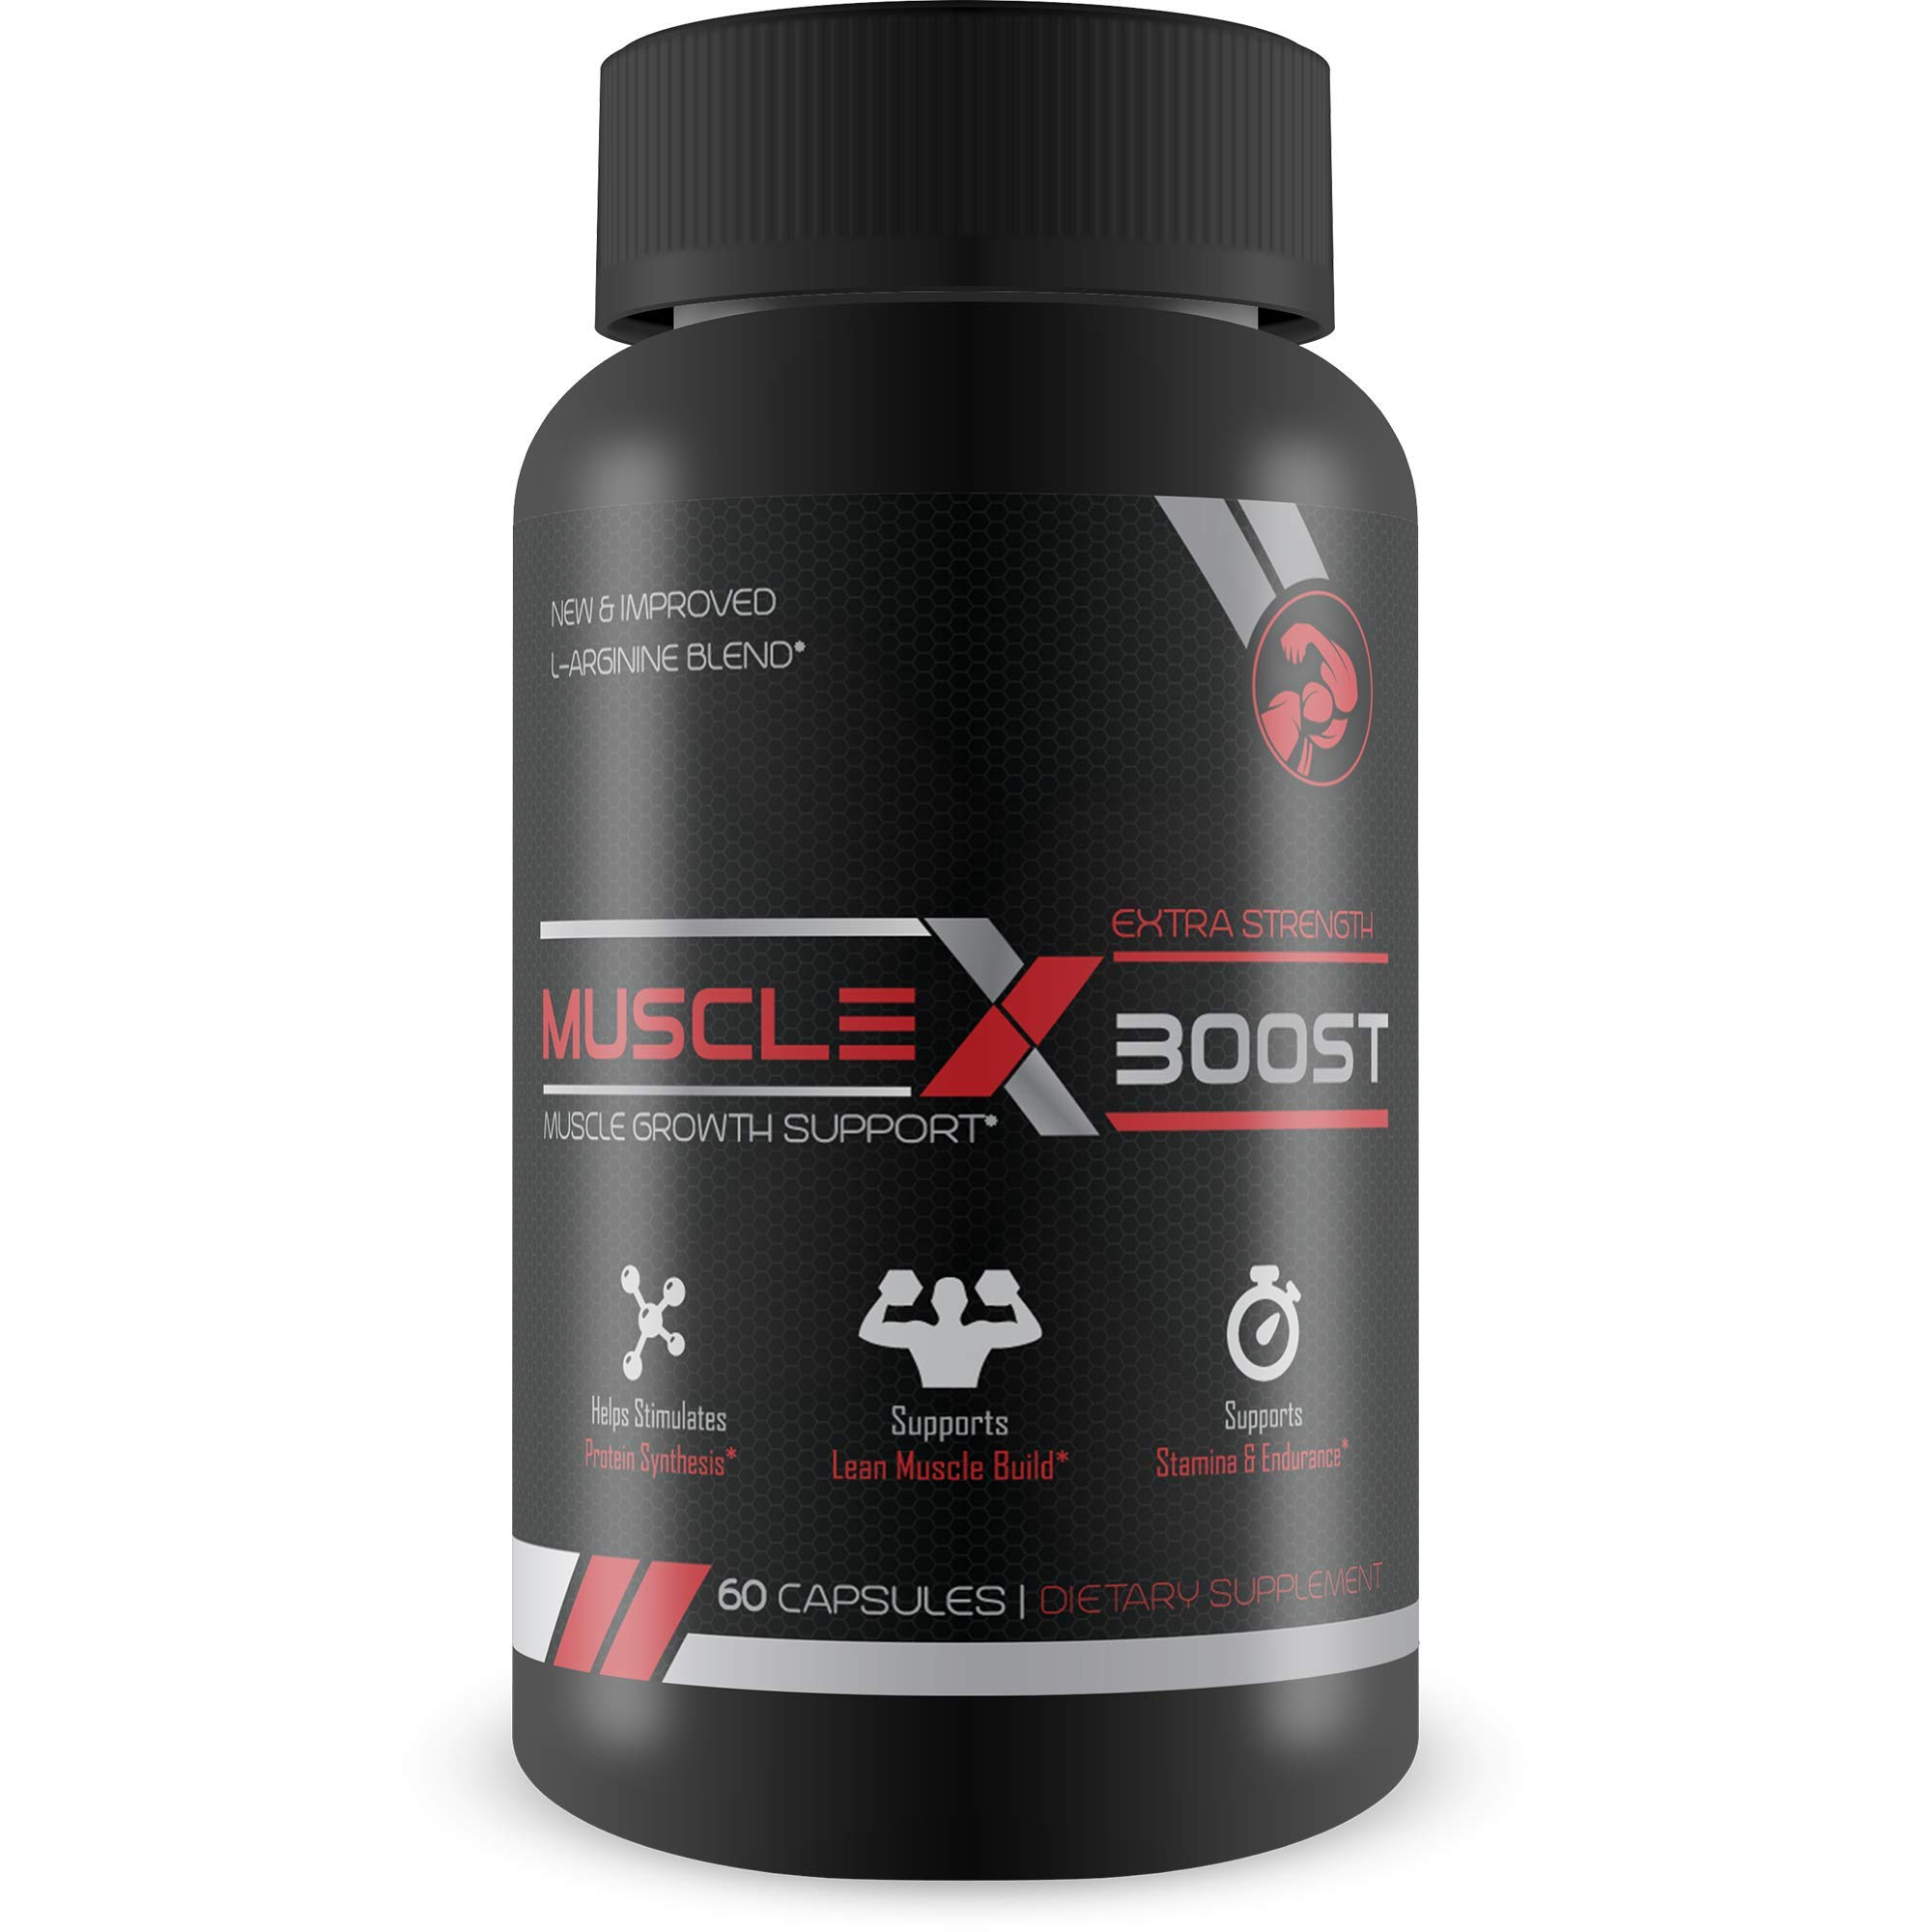 Best Selling- Muscle X Boost- Premium L-Arginine Formula- Extra Strength Muscle Growth Support- Nitric Oxide Booster-Build Lean Muscle-Stimulates Protein Synthesis-Boost Endurance by Muscle X Boost